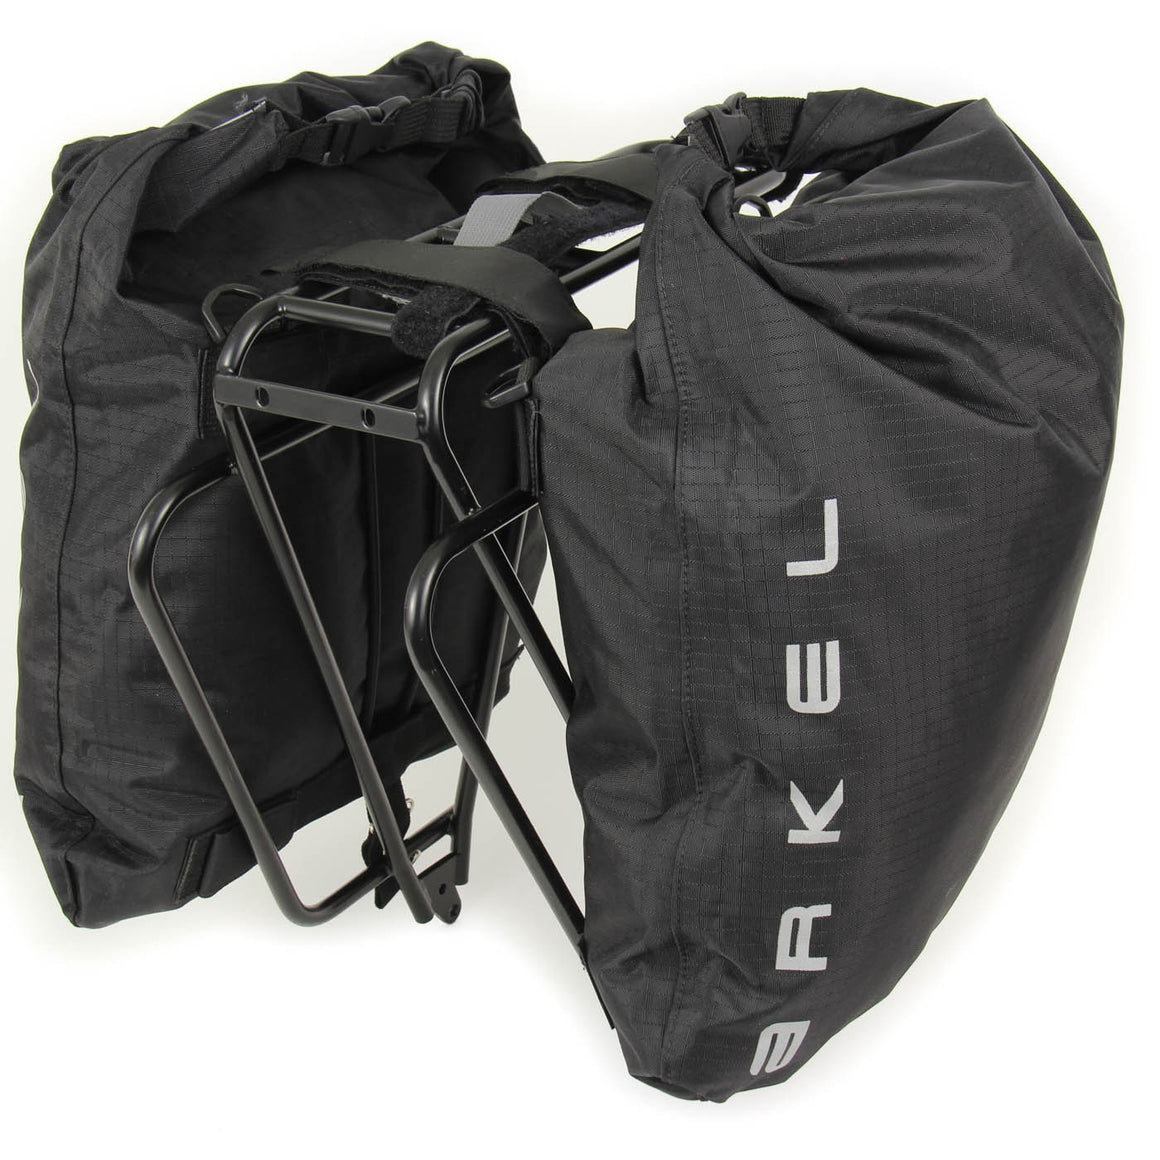 Dry-Lites Waterproof Saddle Bags (Pair)